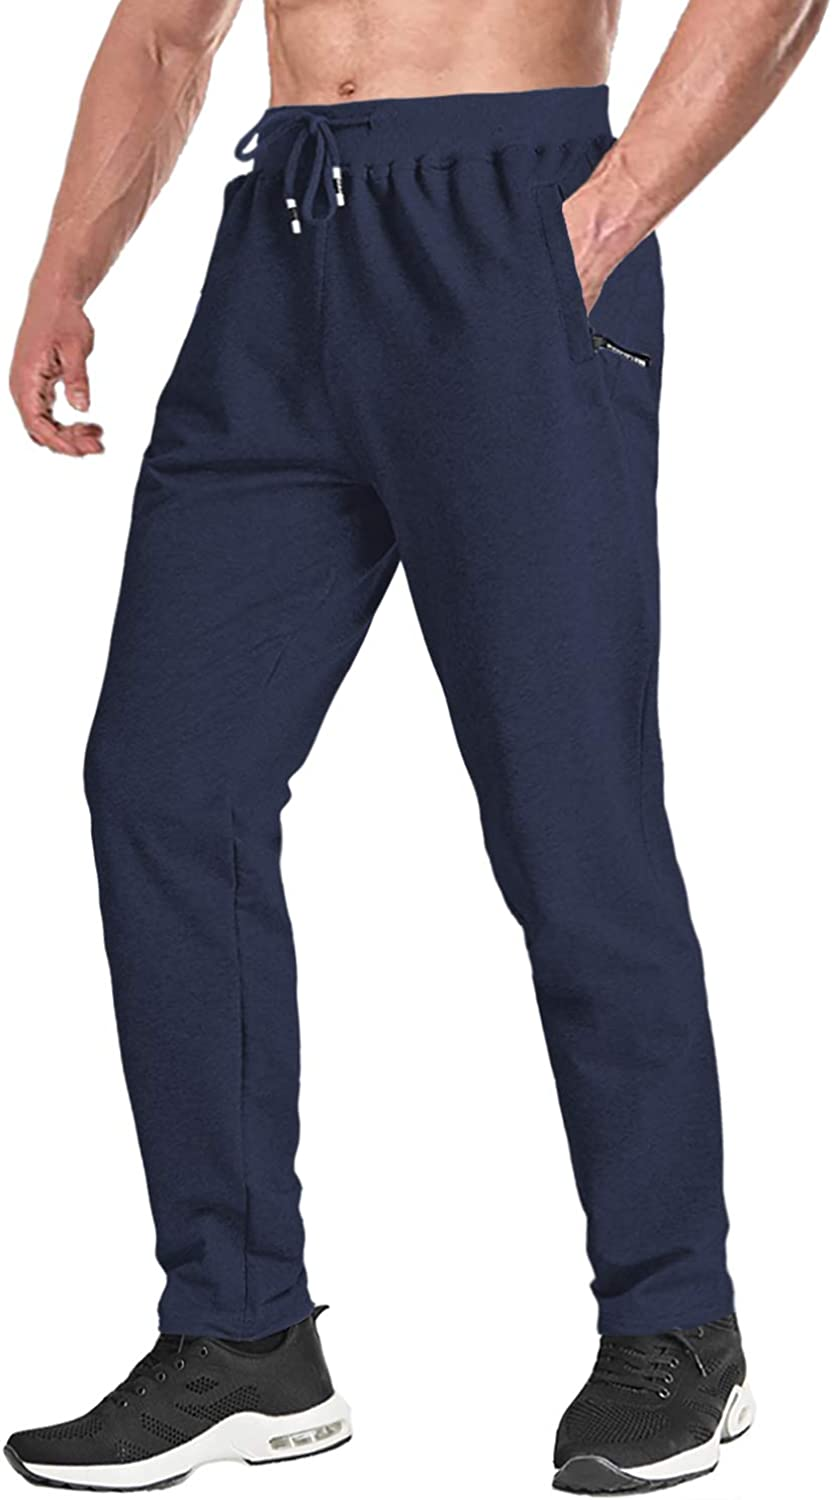 FASKUNOIE Men's Elastic Joggers Open Bottom Running Pants Comfortable Casual Trousers with Zipper Pockets: Clothing